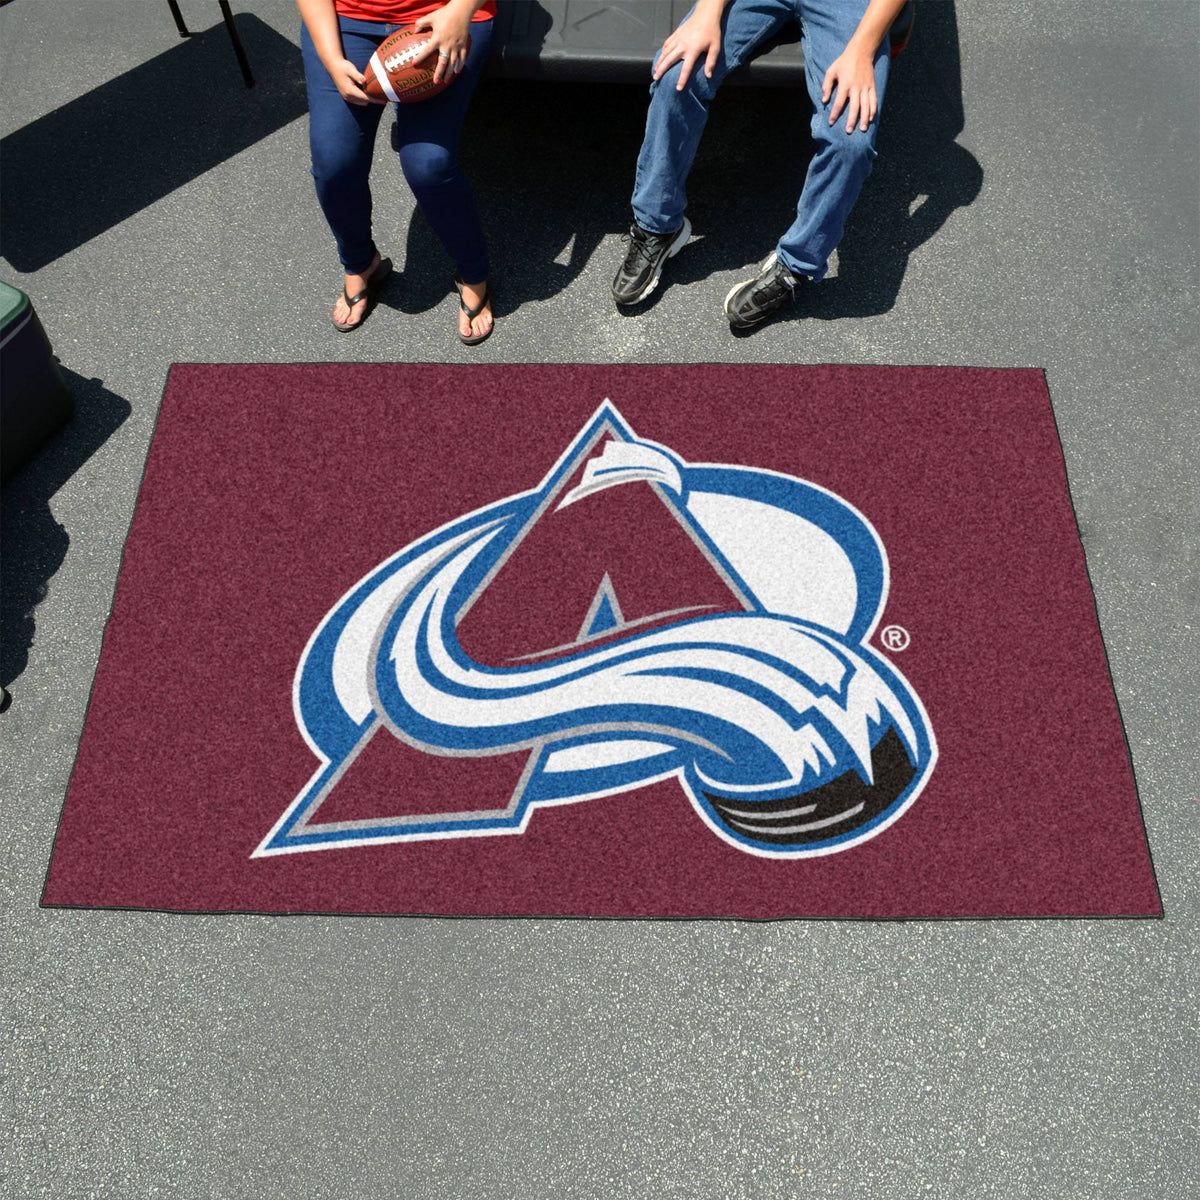 NHL - Ulti-Mat NHL Mats, Rectangular Mats, Ulti-Mat, NHL, Home Fan Mats Colorado Avalanche